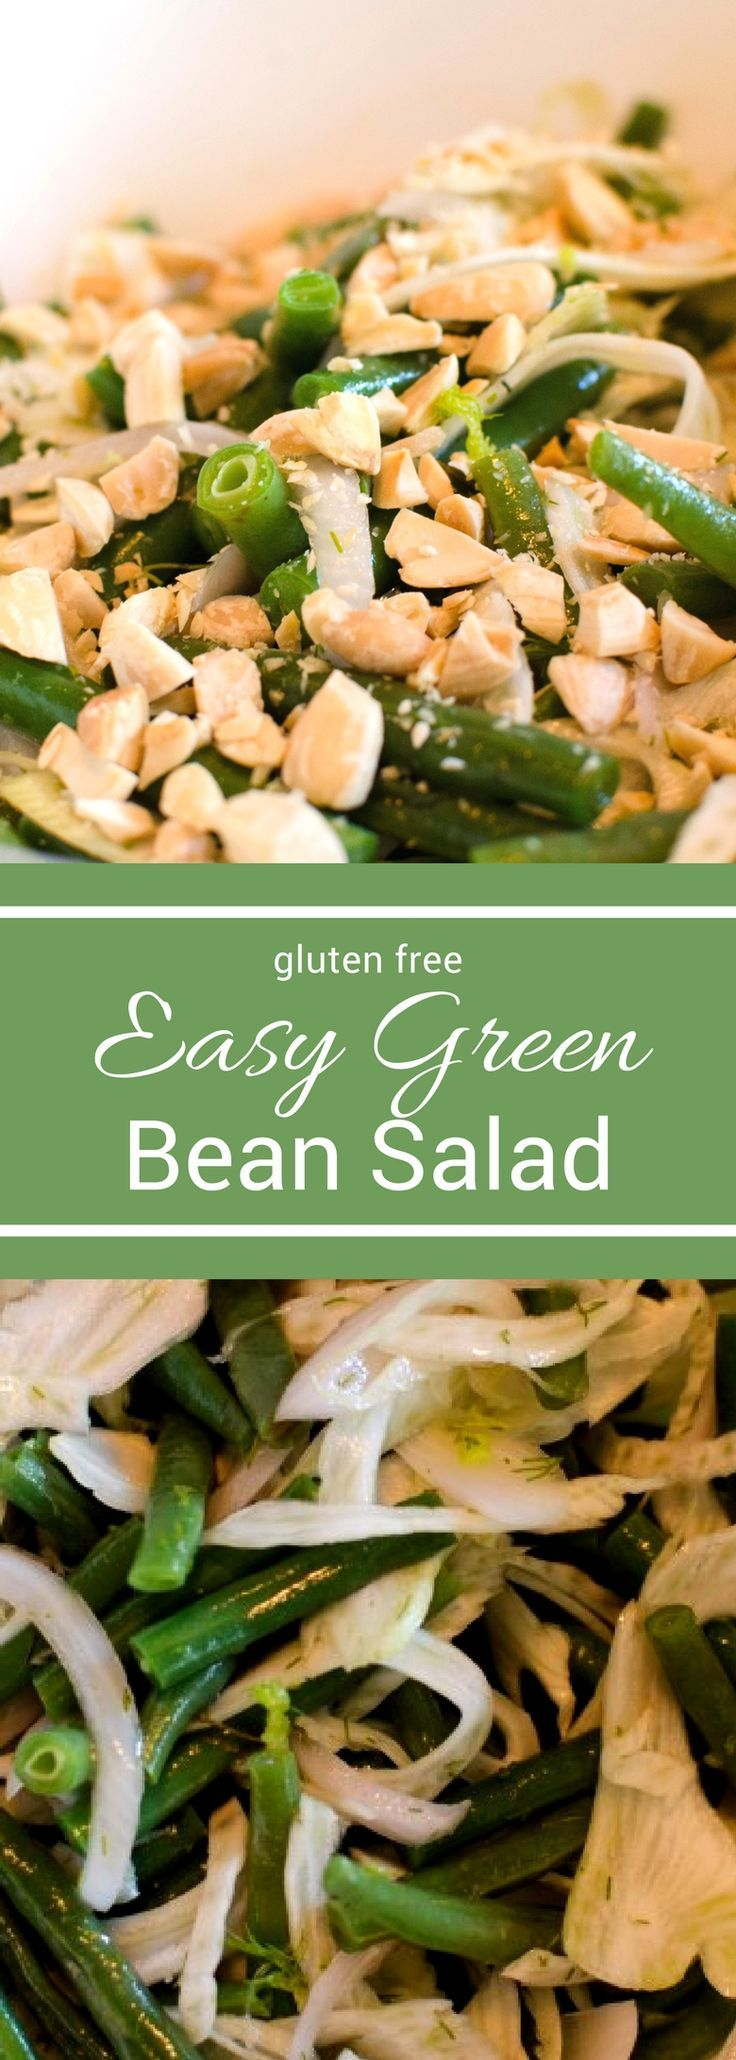 This easy green bean salad is the perfect way to lighten up your holiday menu. Instead of a heavy and mushy green bean casserole try this light and crunchy green bean salad! With fennel, pickled shallots, and almonds it's the perfect low carb side! #SundaySupper